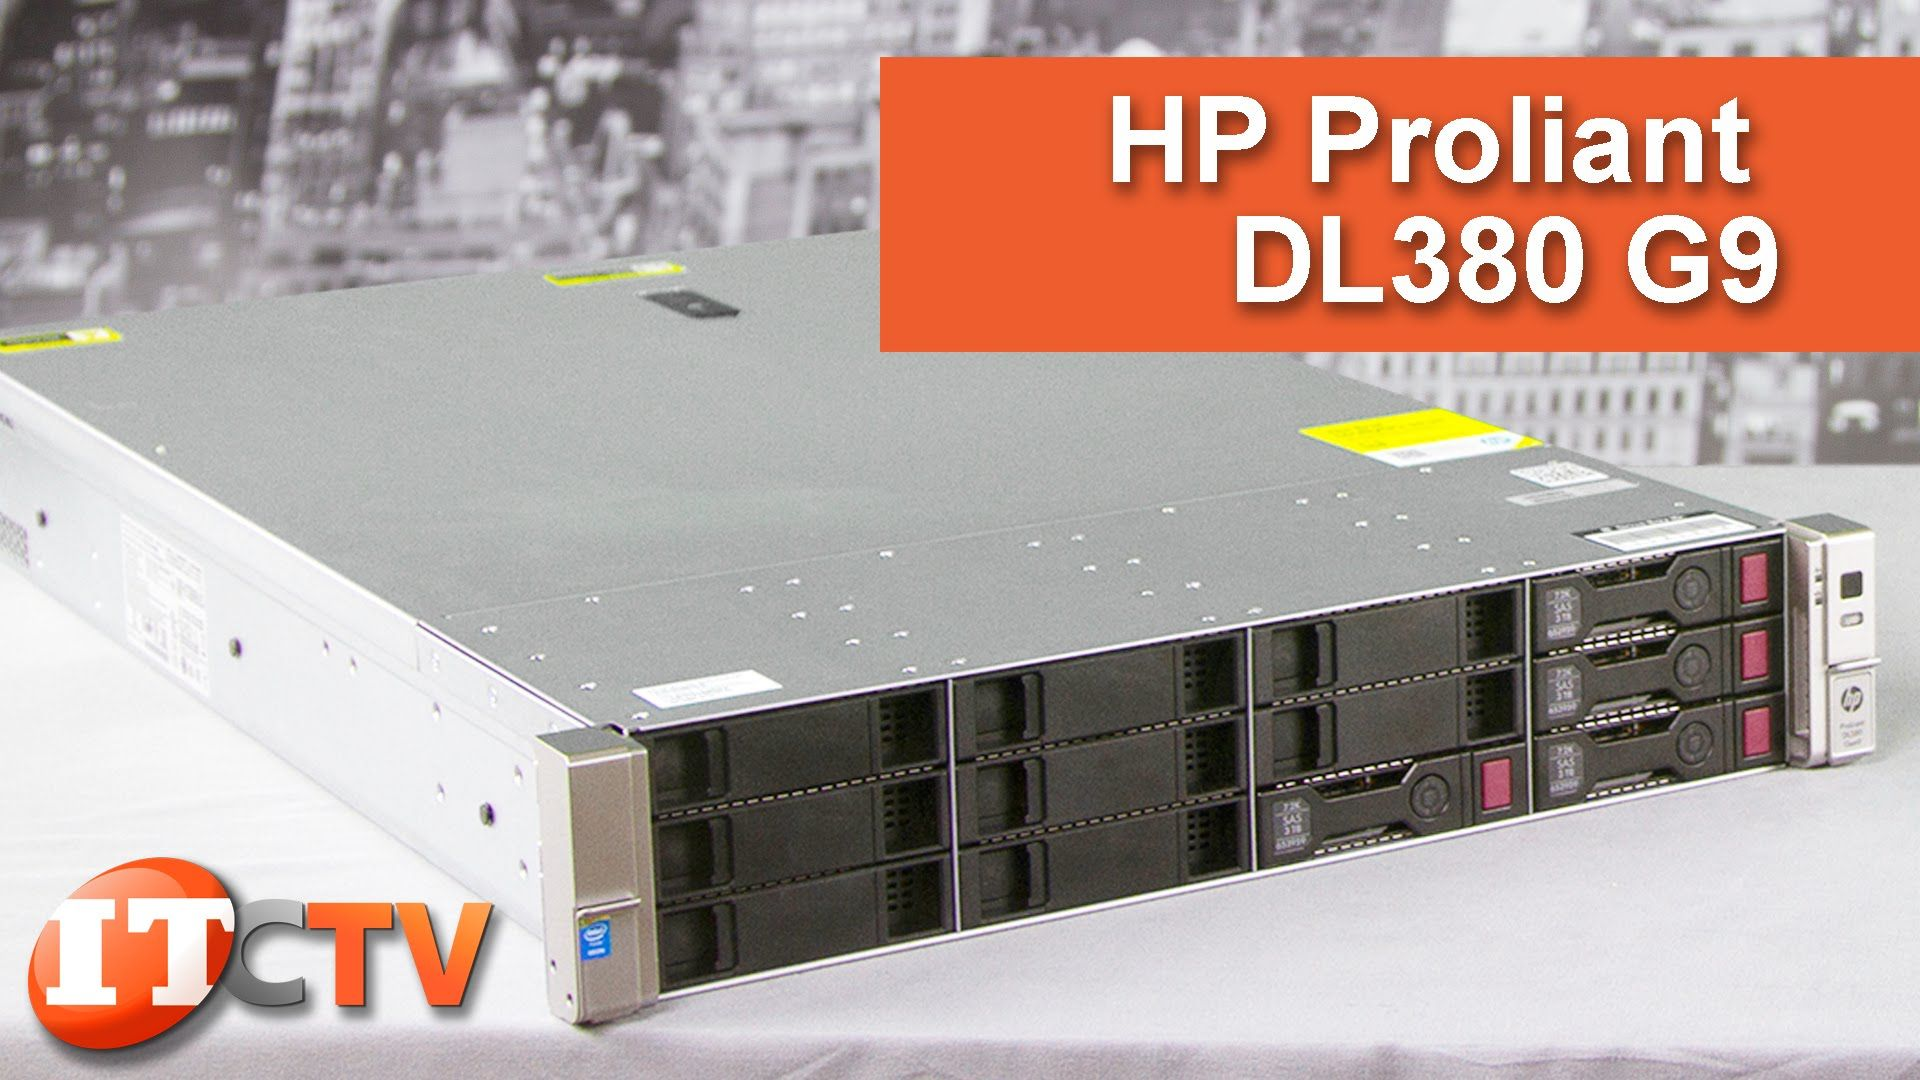 Dell inspiron 23 quot 5348 all in one desktop unboxing youtube - Hp Proliant Dl380 G9 Rack Server Overview Great Video On Youtube Check Out Itcreationstv